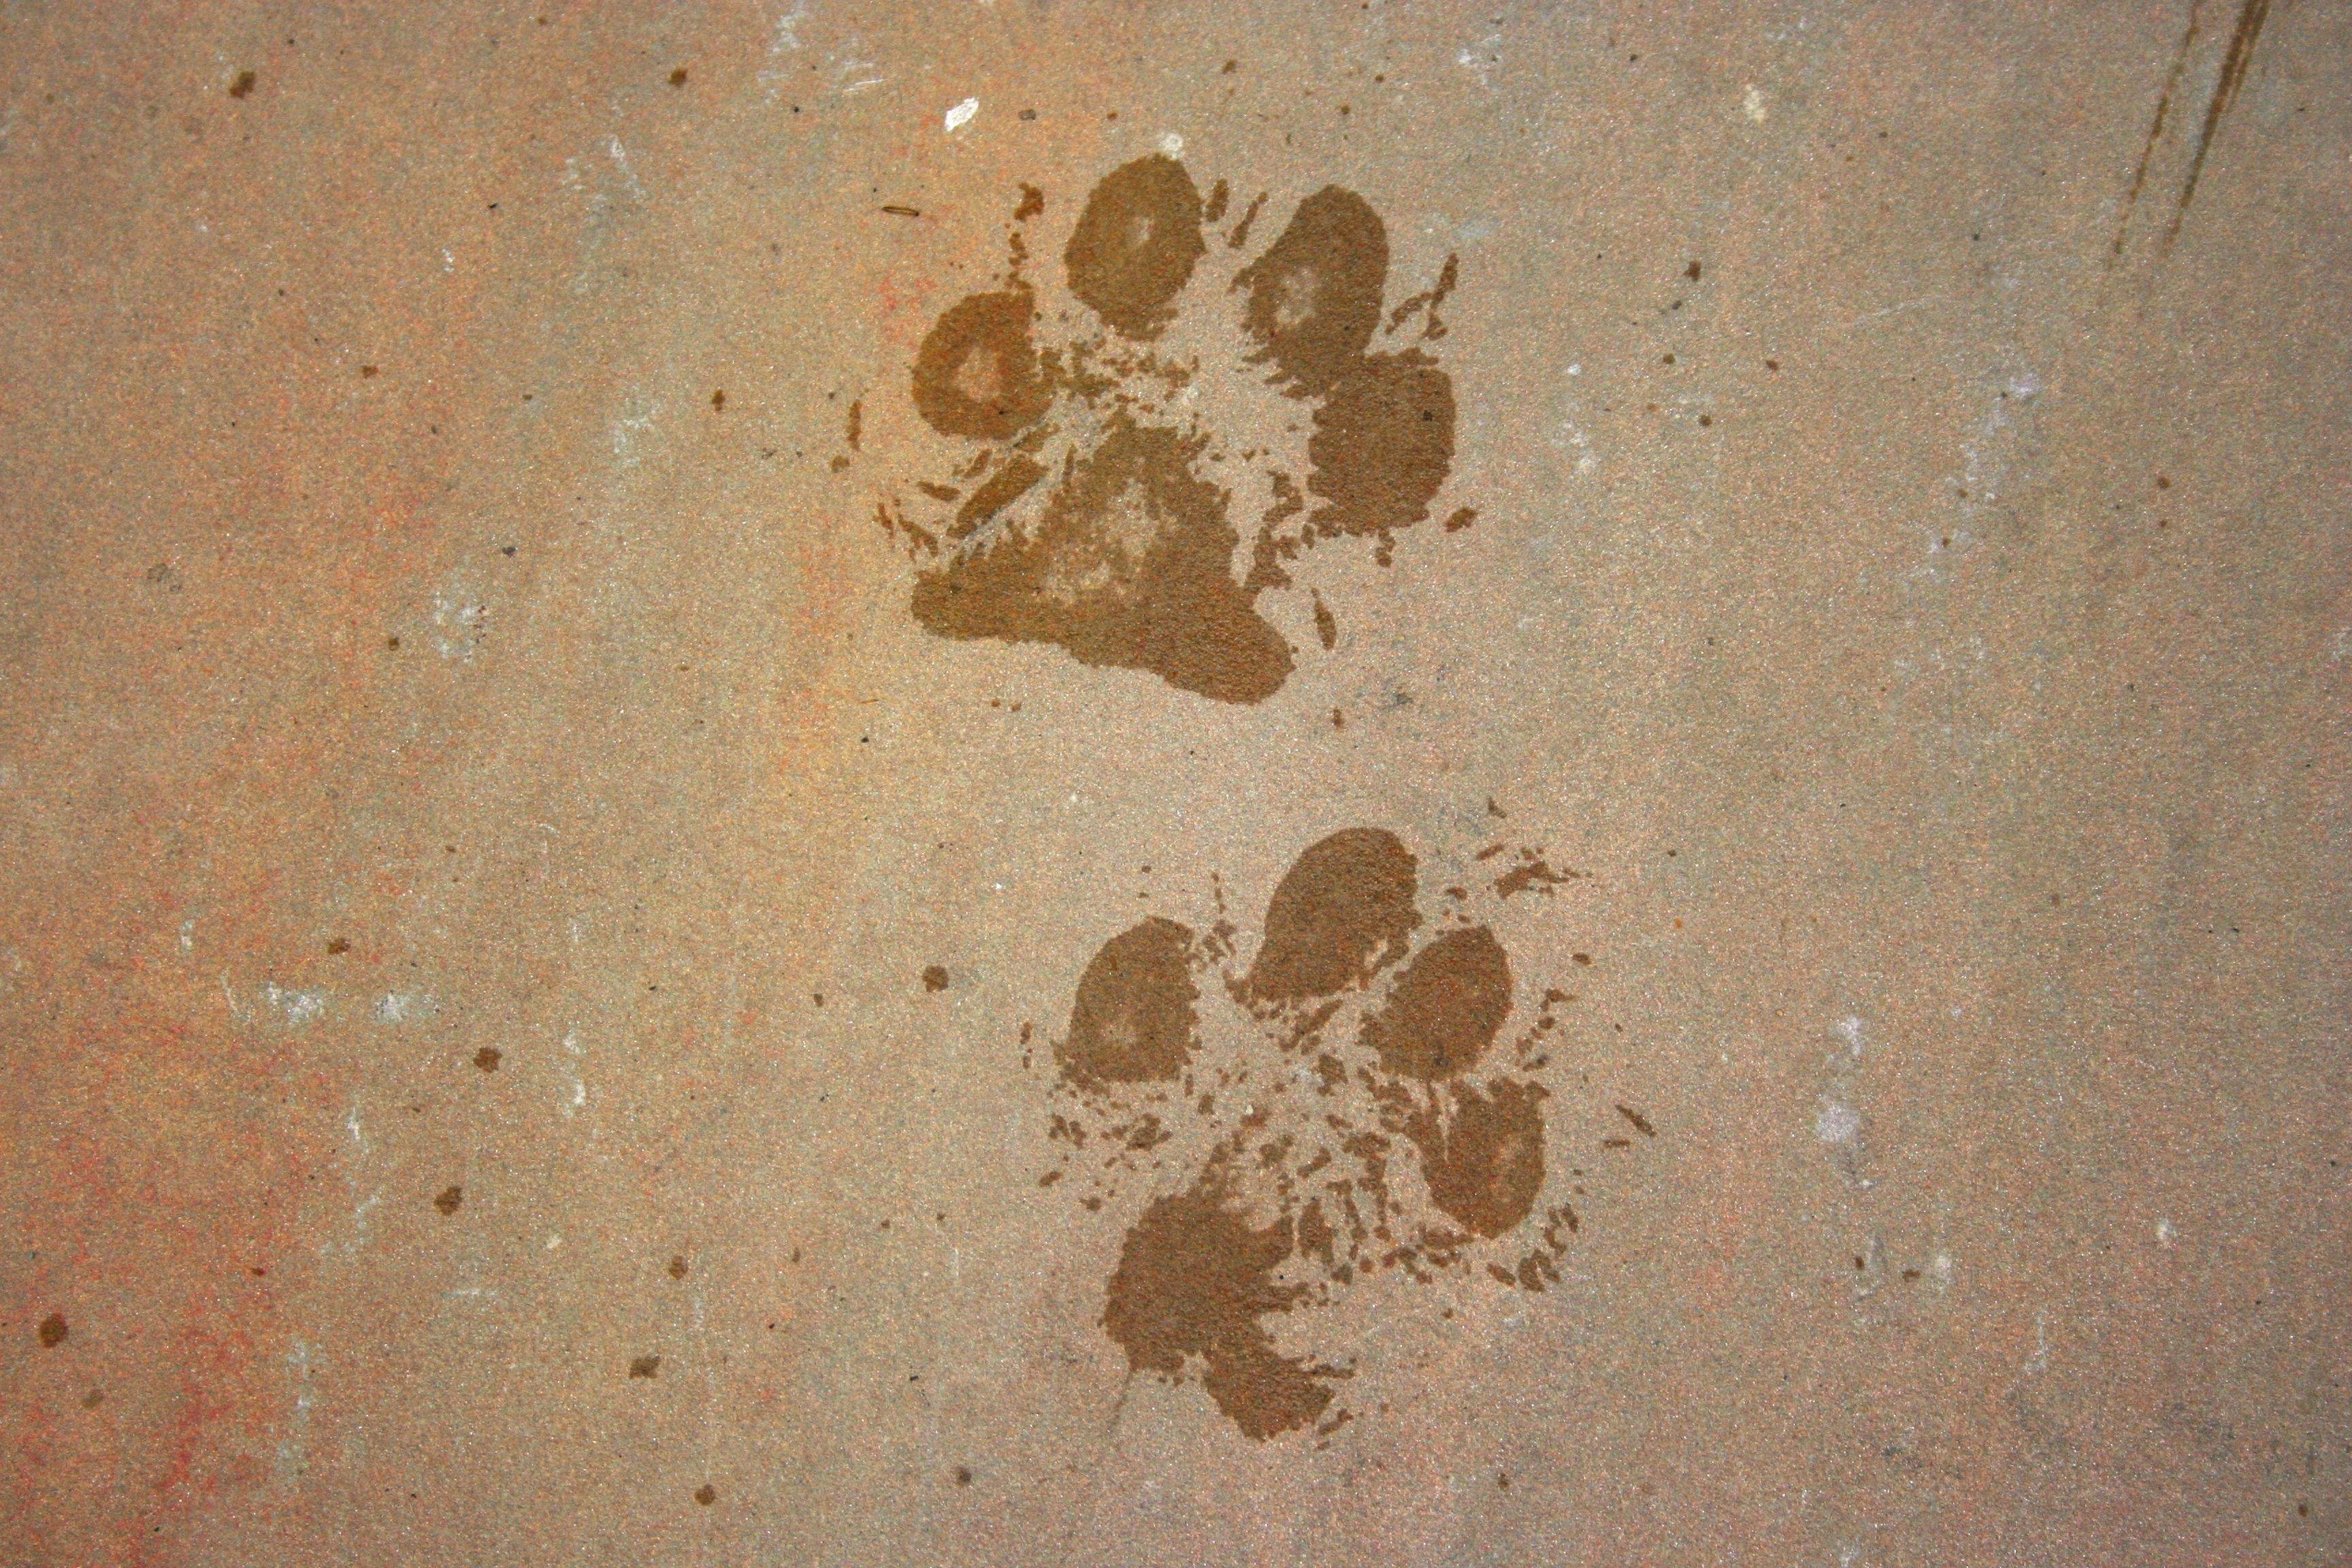 Free Images : Sand, Wood, Trail, Texture, Floor, Footprint, Dog Within Footprints In The Sand Wall Art (Image 15 of 20)